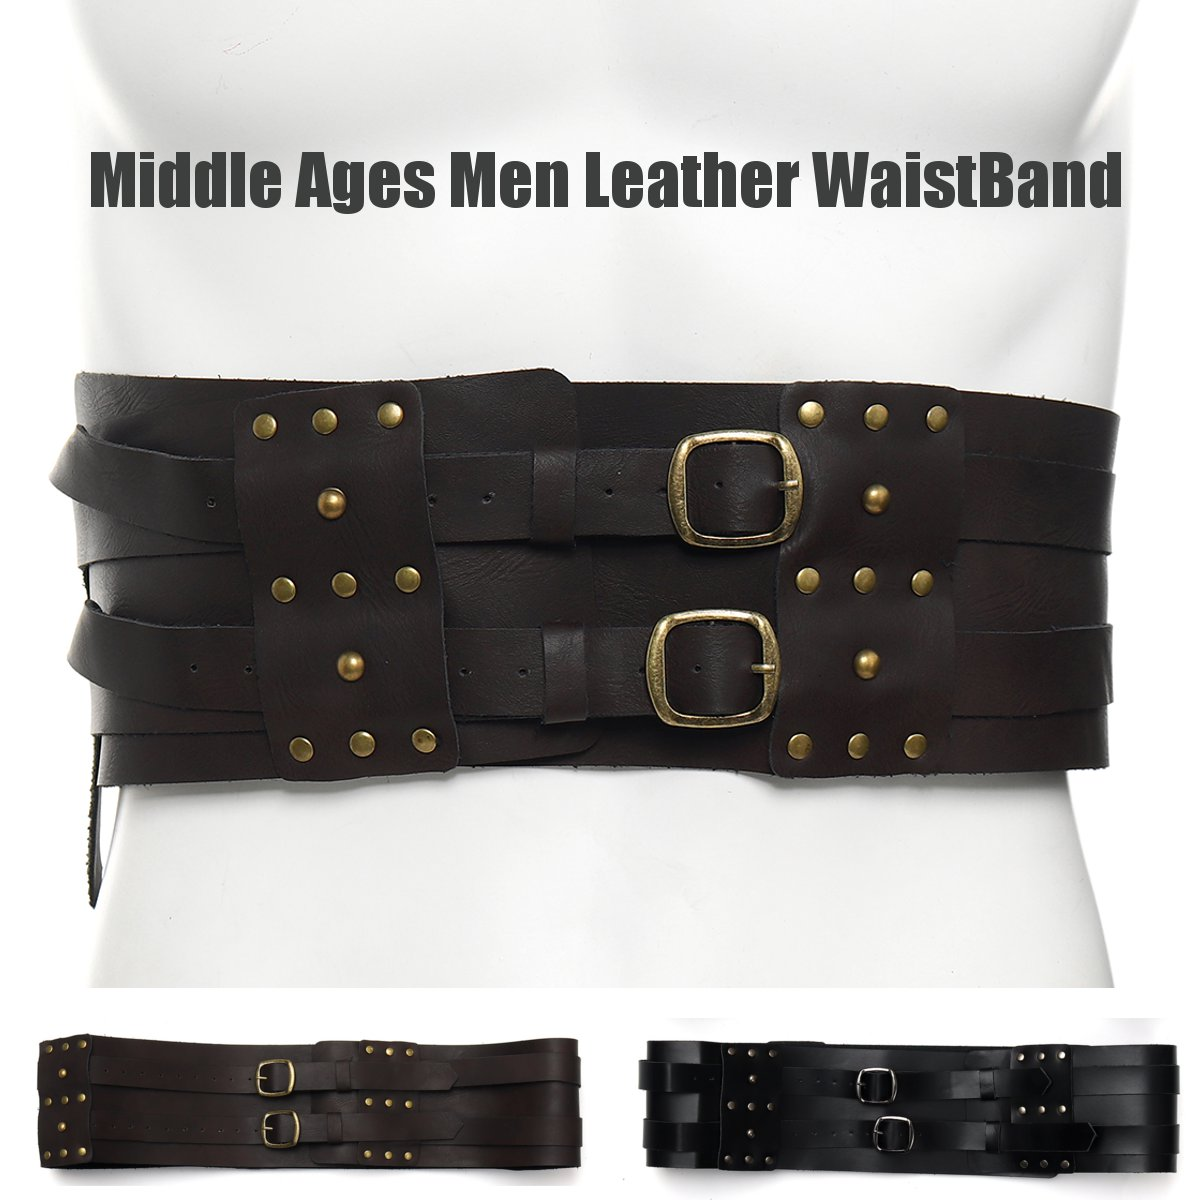 Middle Ages Men Leather WaistBand Fashion Waist Belt Party Cosplay Costume Kit Apparel Accessories Corset 110x10cm 2 Colors